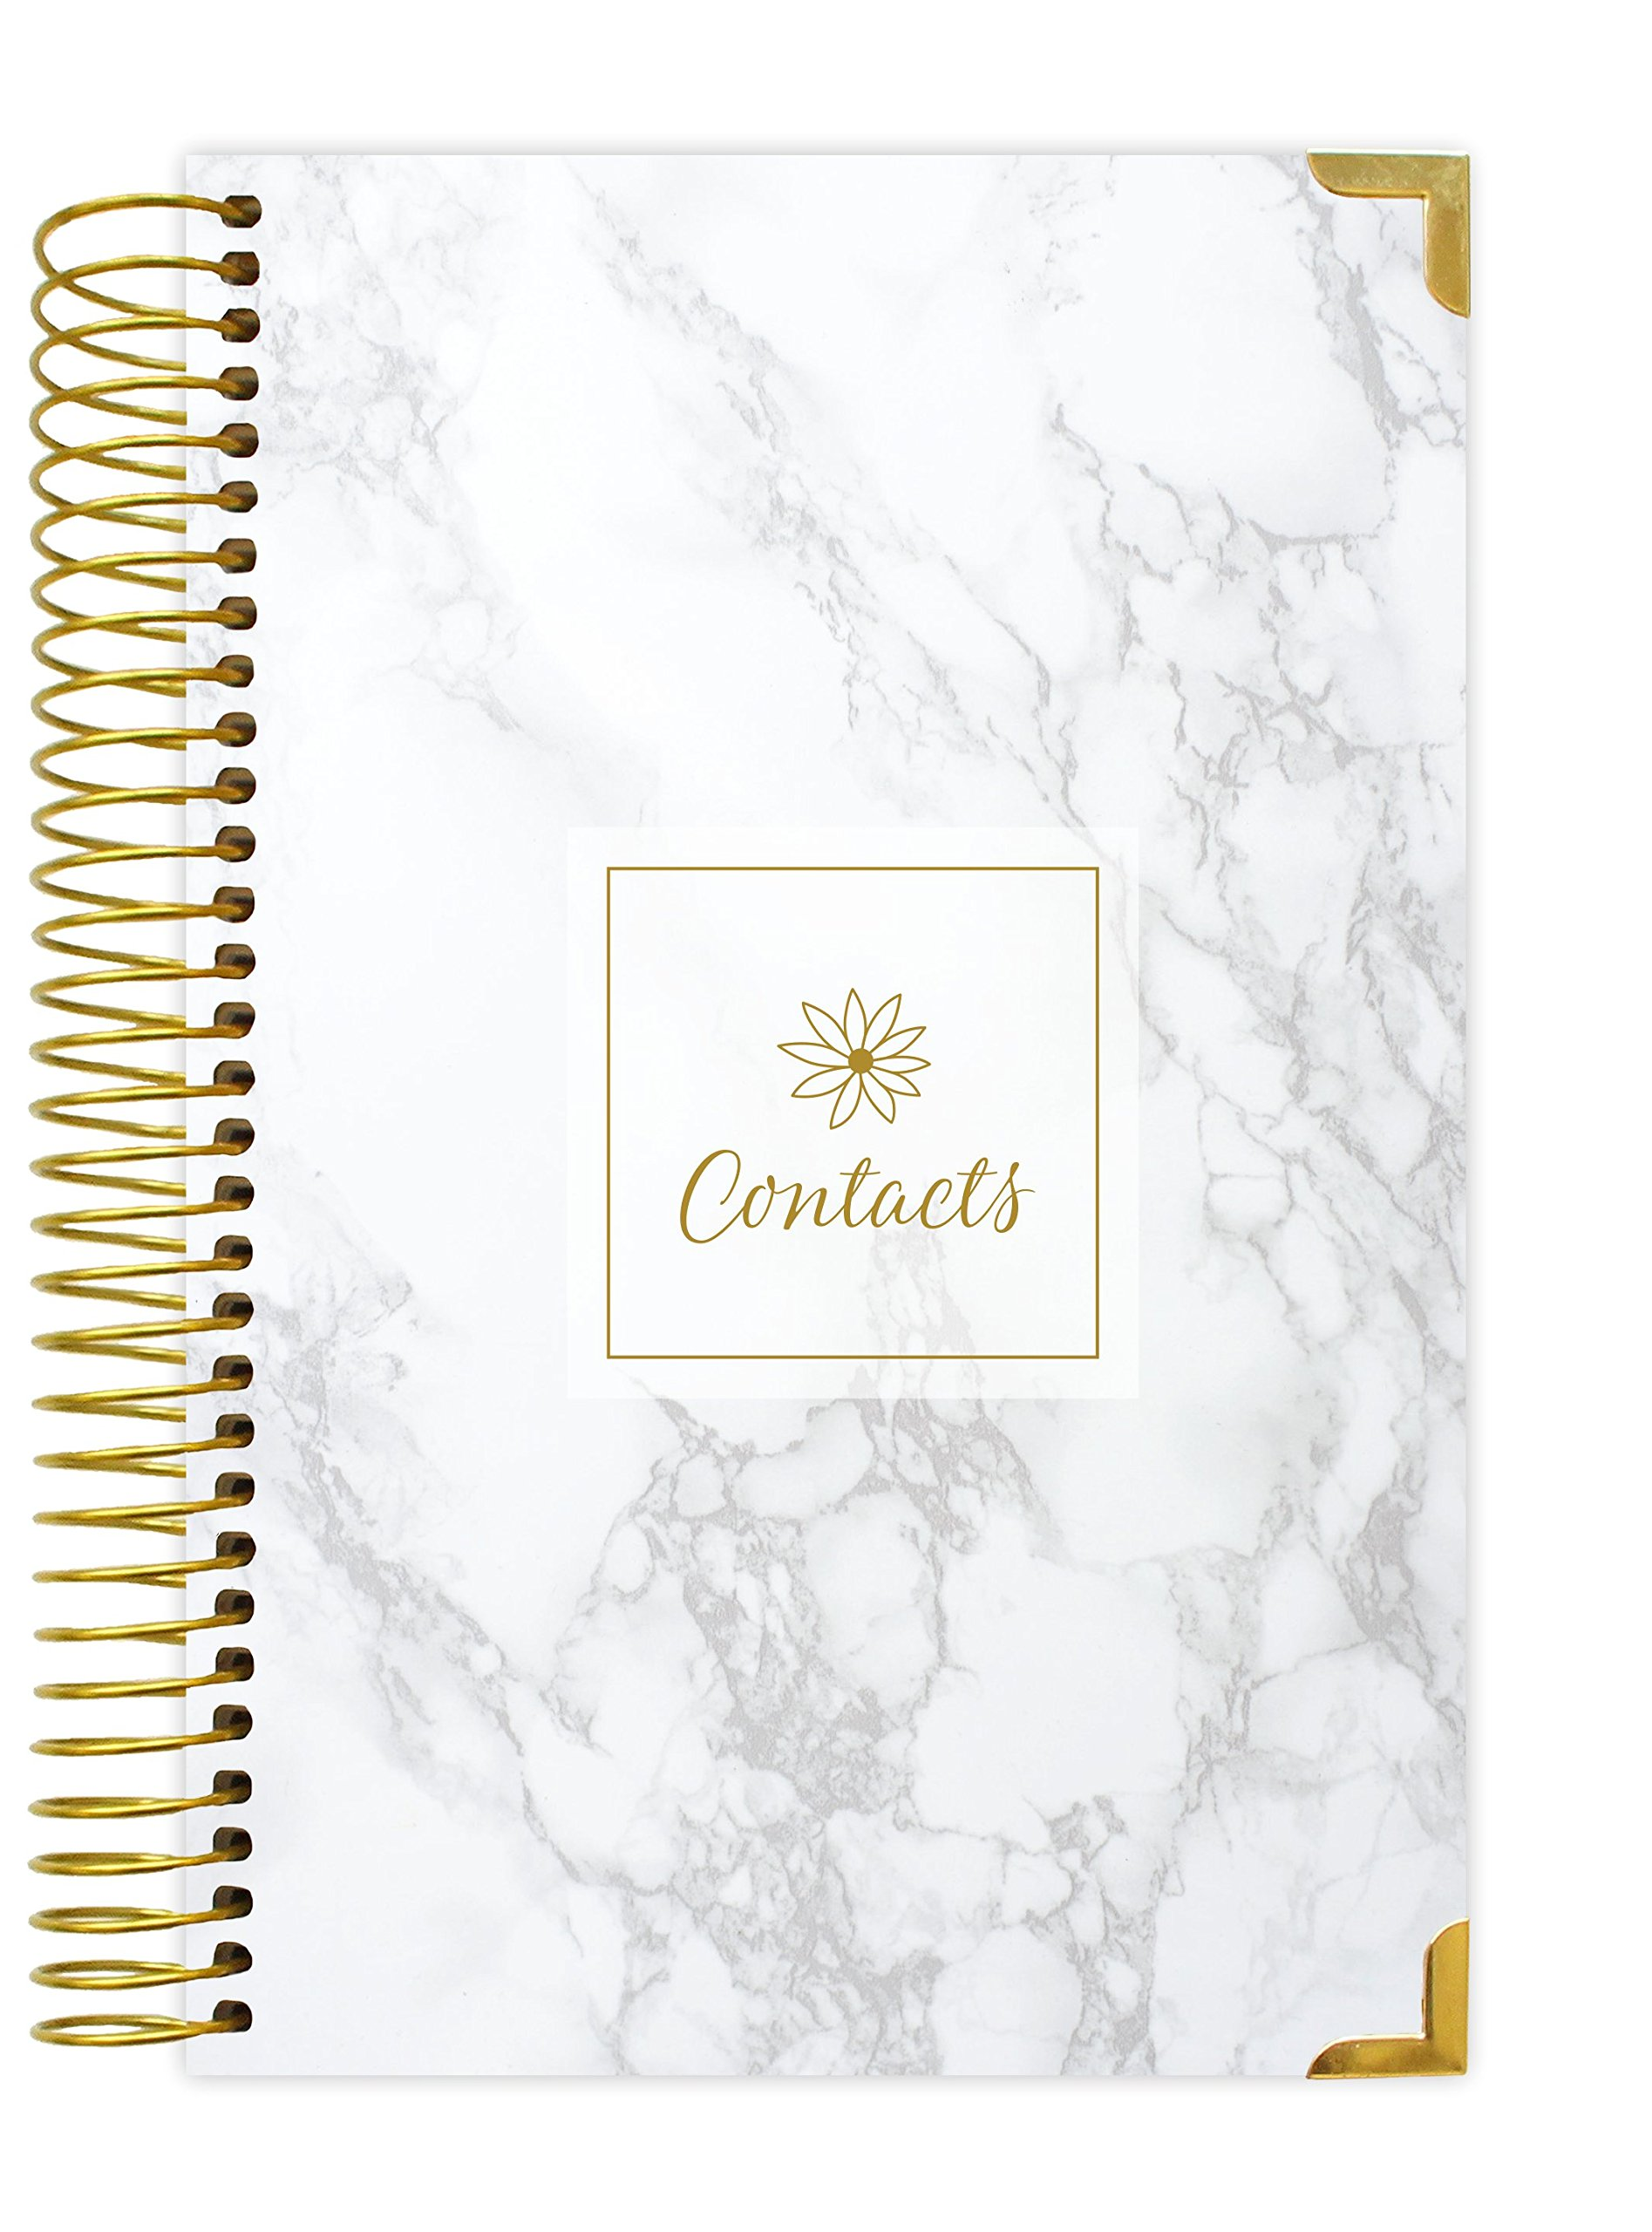 bloom daily planners Address Book - Contacts - Addresses and Phone Numbers - 6'' x 8.25'' - Marble